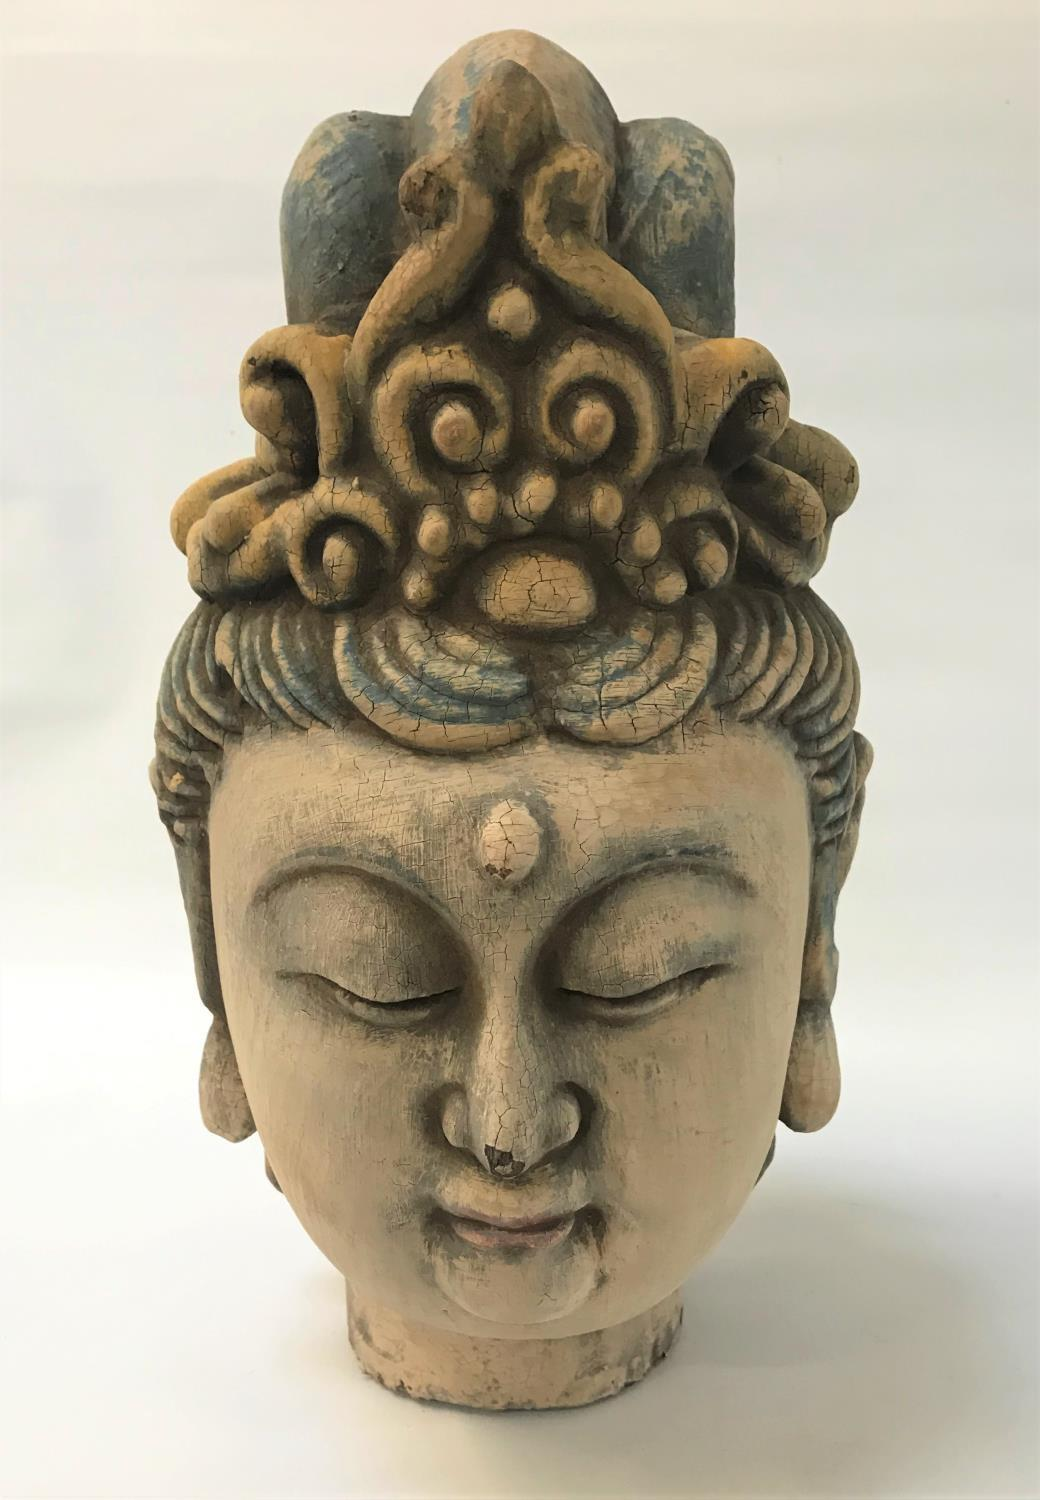 Lot 288 - CARVED POLYCHROMED HEAD OF GUANYIN with a serene expression, eyes closed and mouth relaxed,